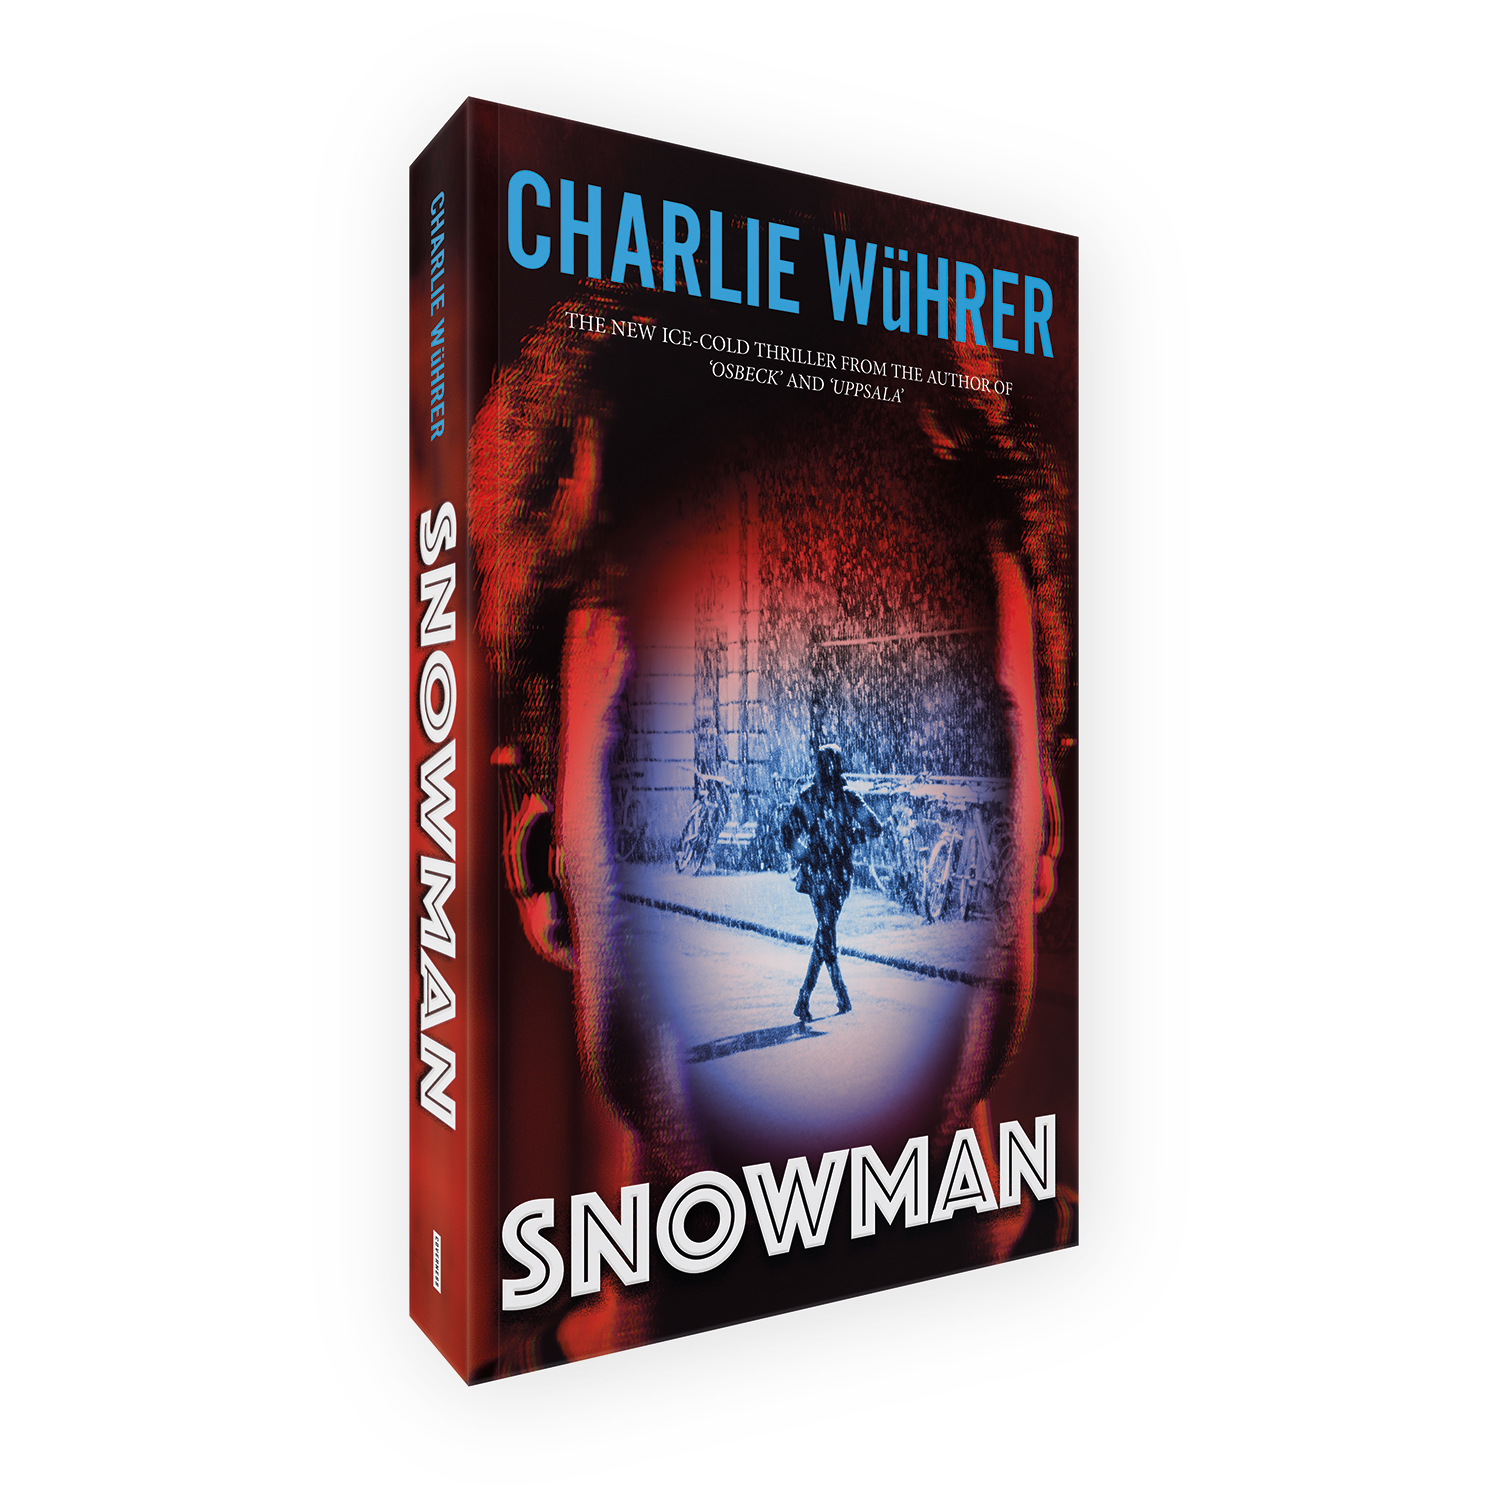 'Snowman' is a bespoke cover design for a modern thriller novel. The book cover was designed by Mark Thomas, of coverness.com. To find out more about my book design services, please visit www.coverness.com.